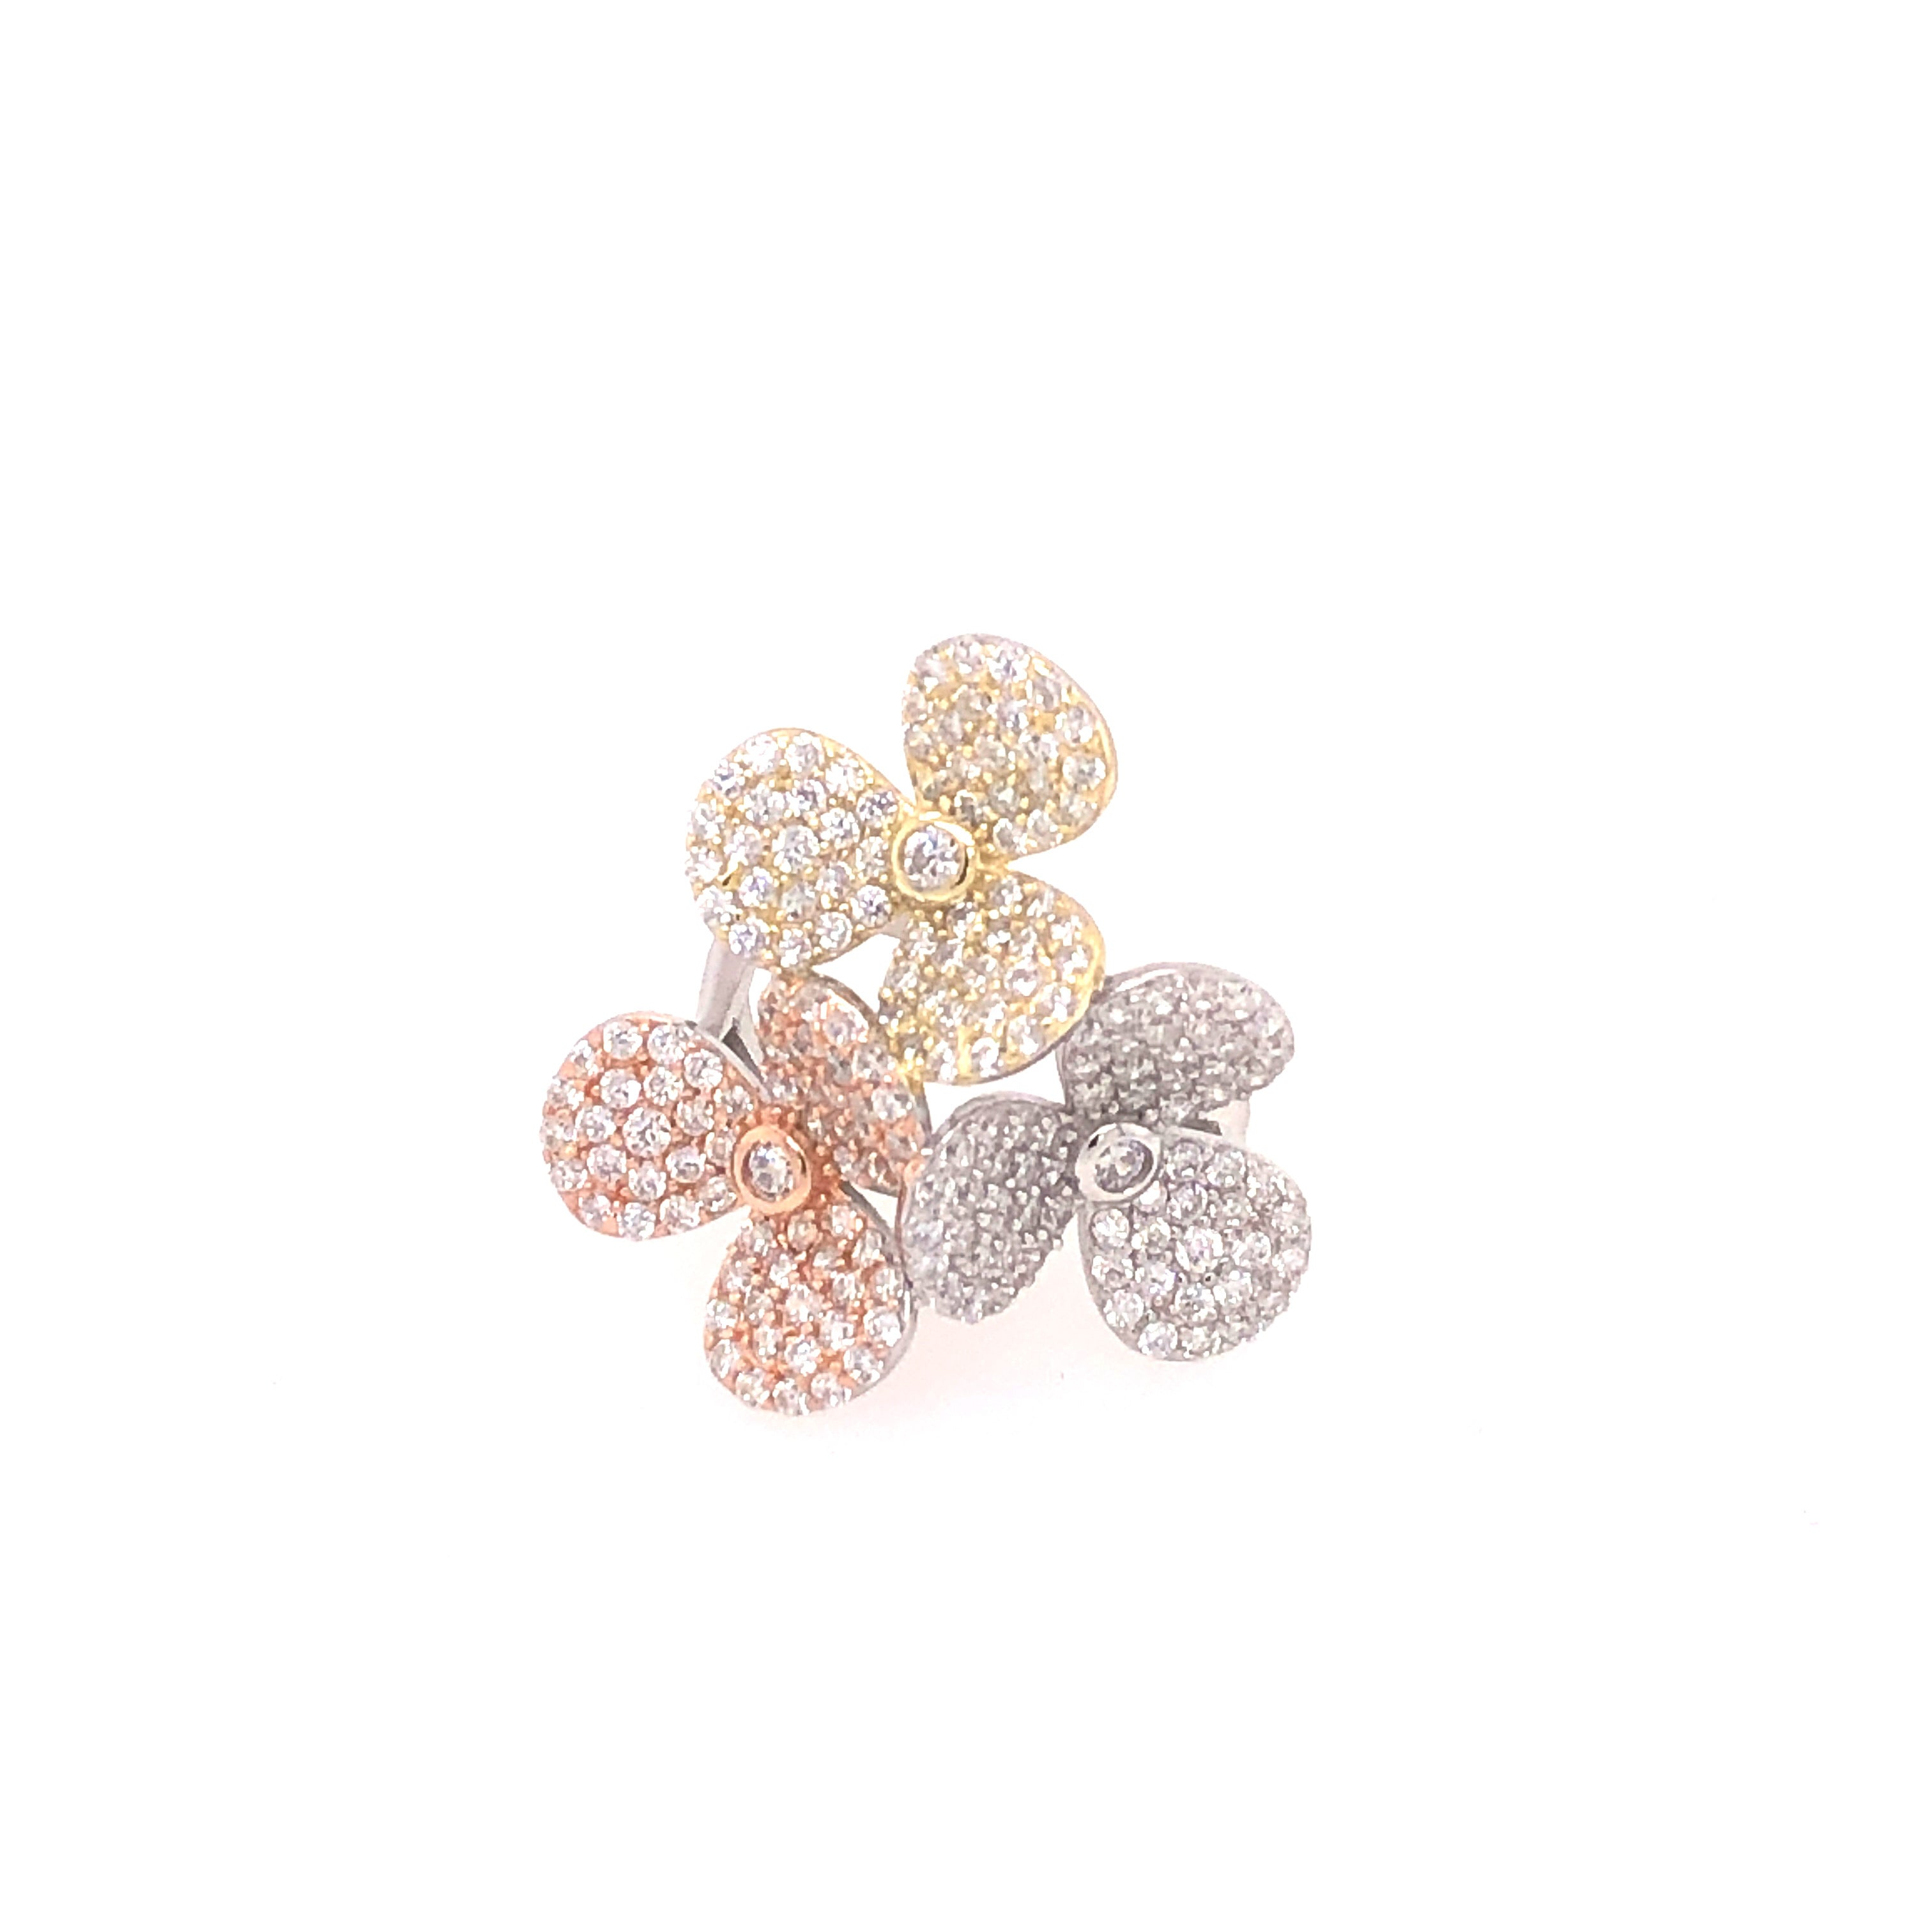 Pave Tricolor Floral Ring